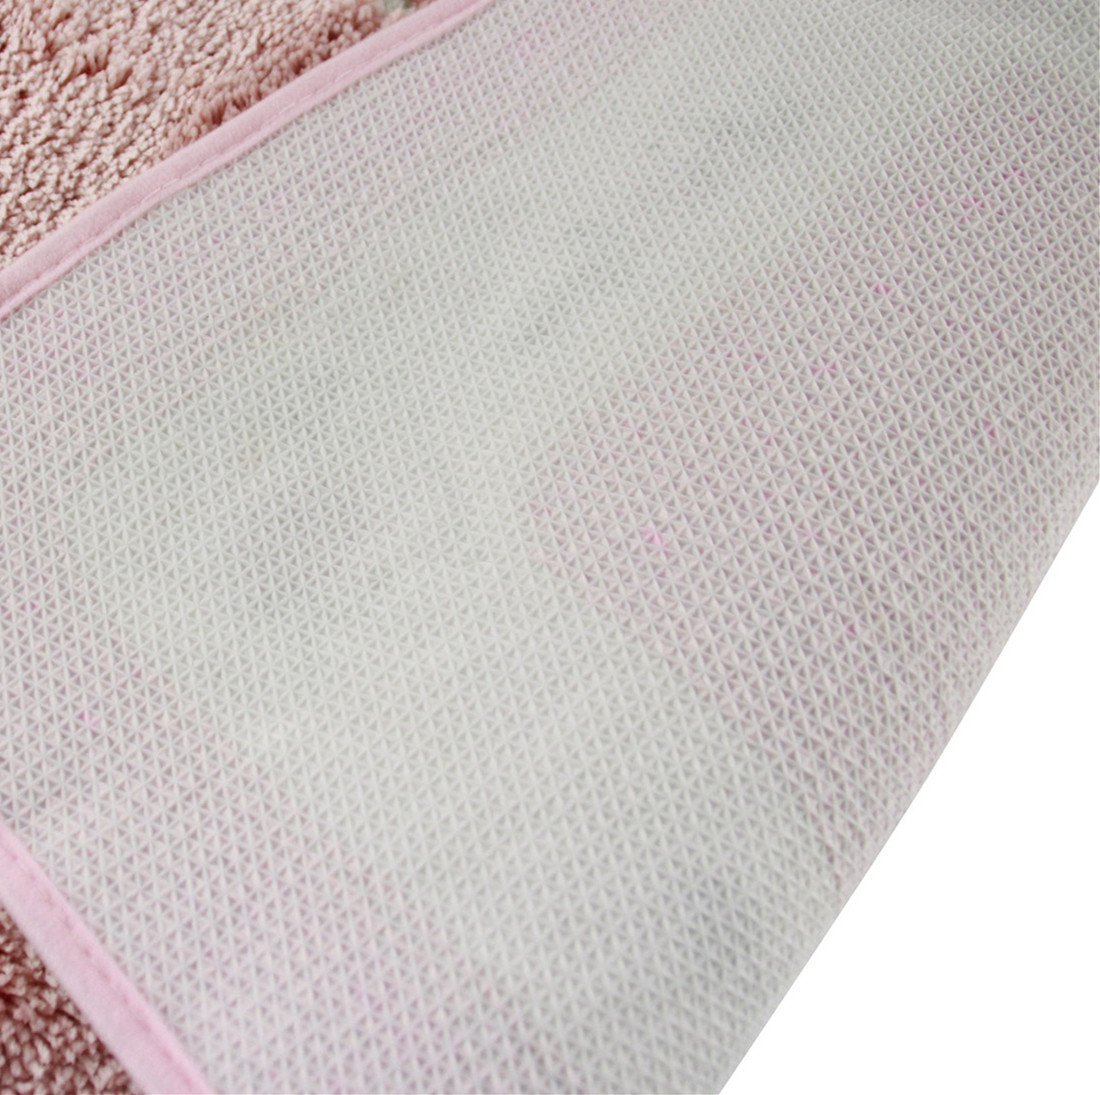 36inch by 36inch, Pink Licheng Rounded Floral Rural Design Beautiful Rose Flower Non Slip Absorbent Area Rugs